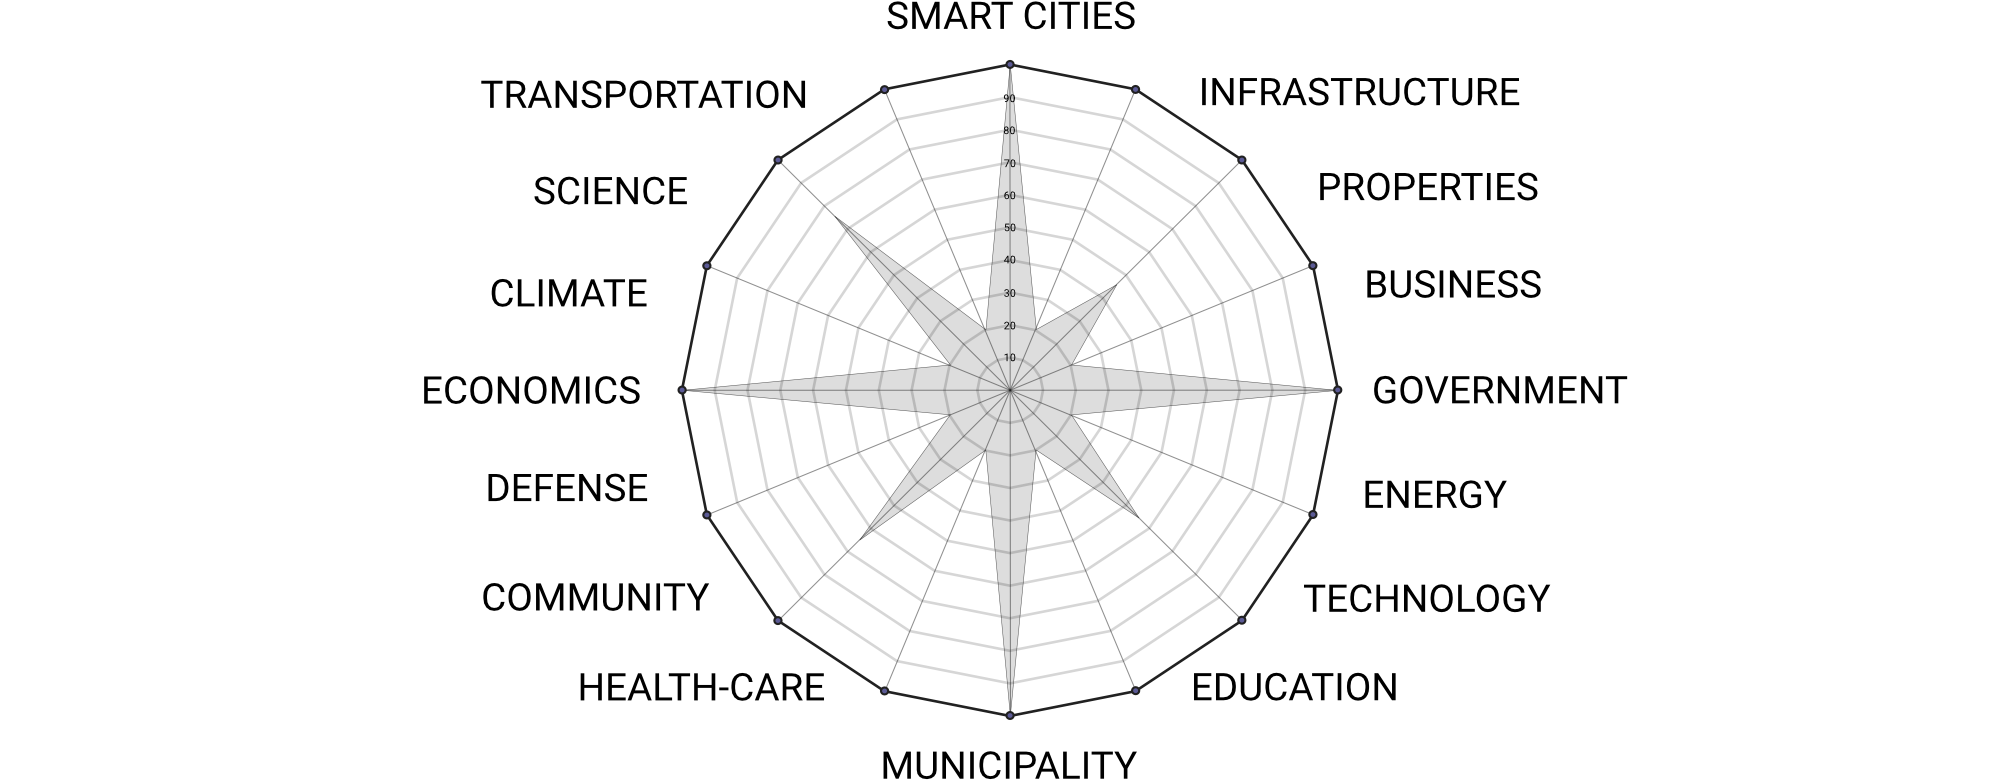 smart cities advisor city segments